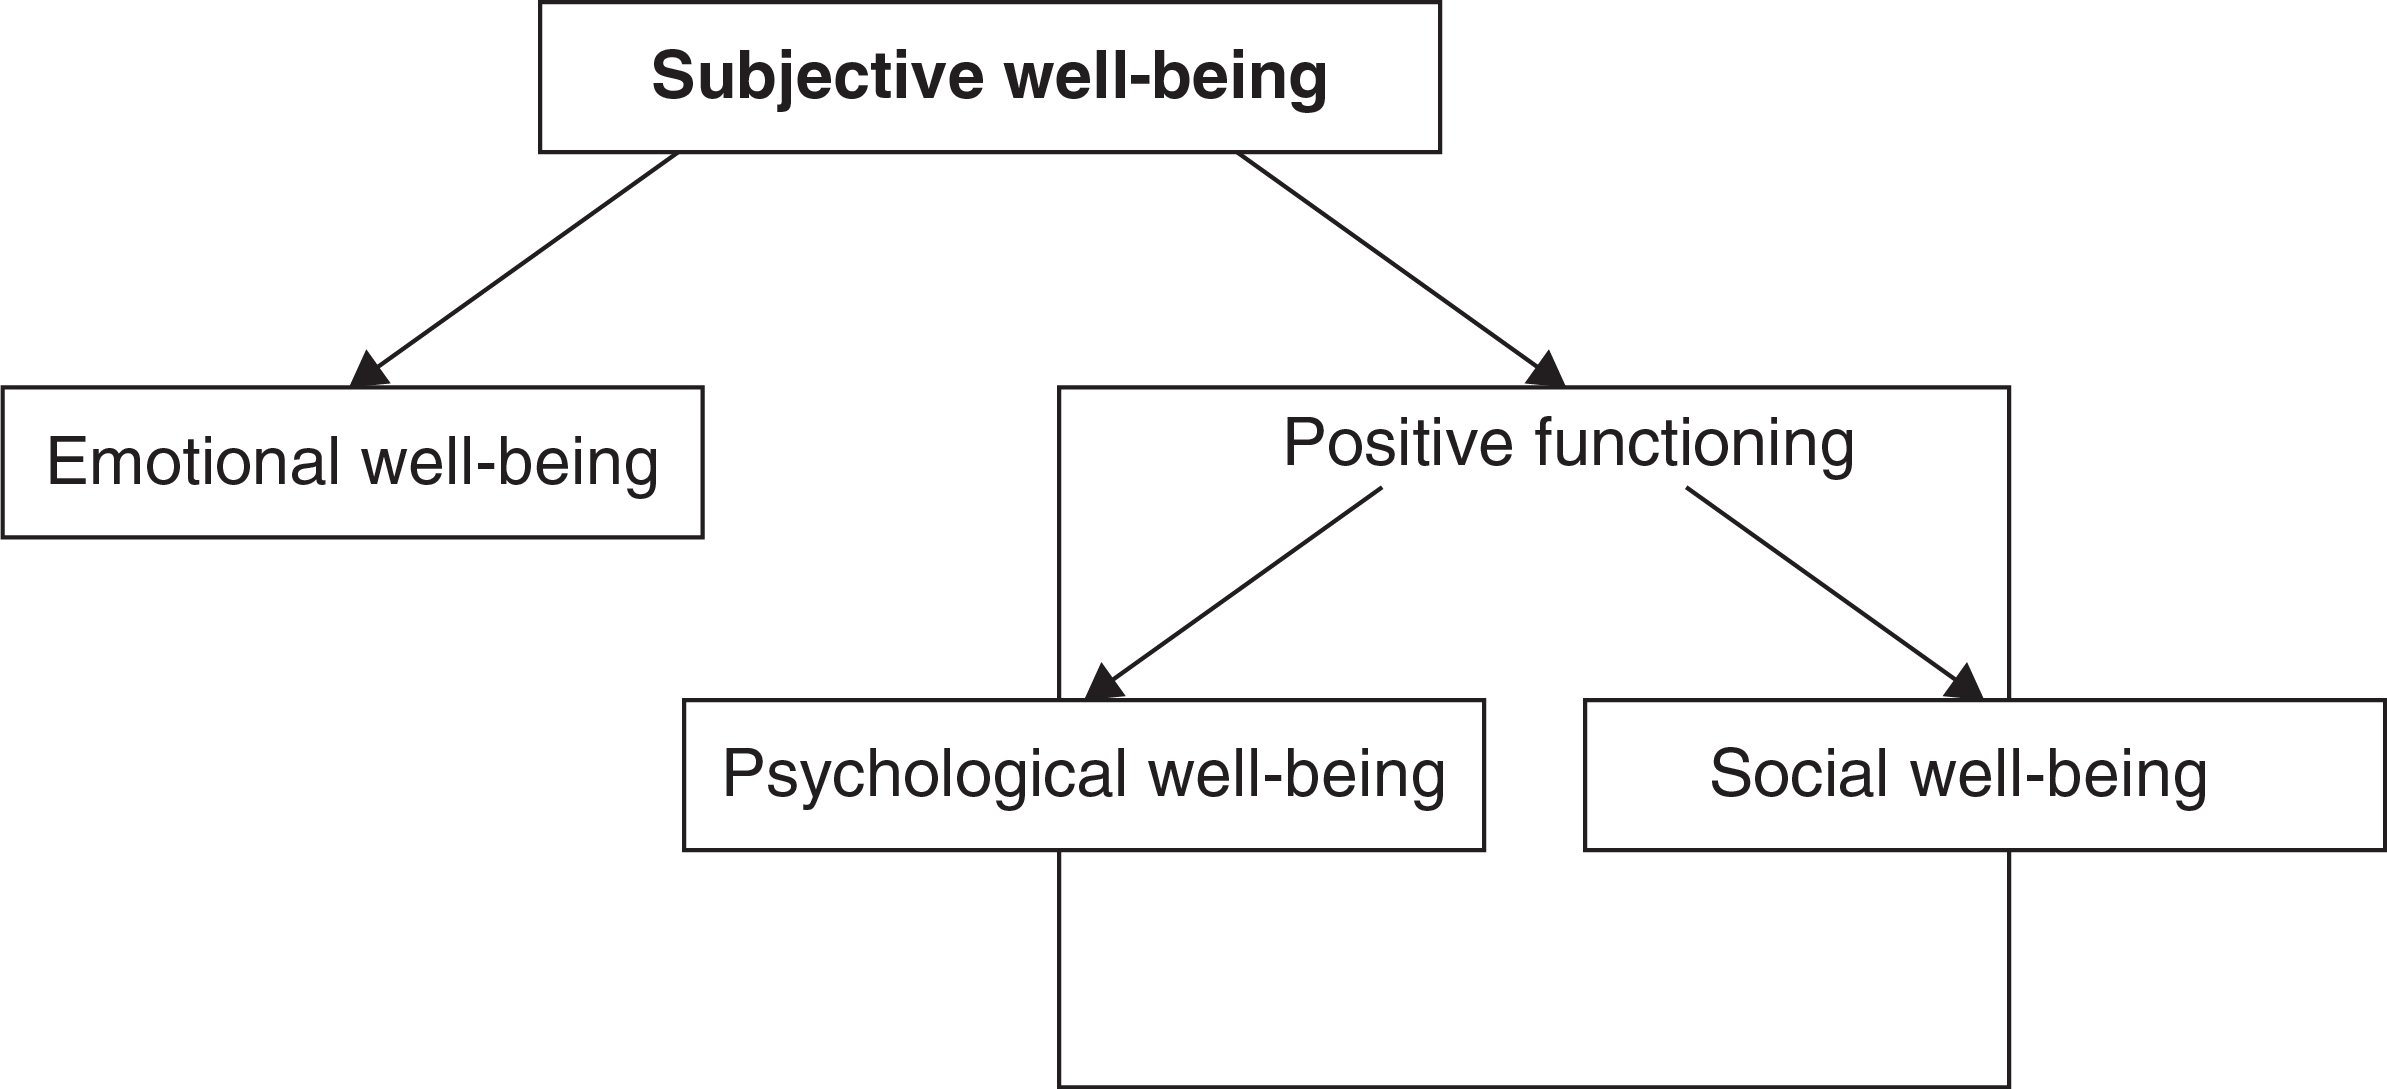 Overview of Subjective Well-Being.